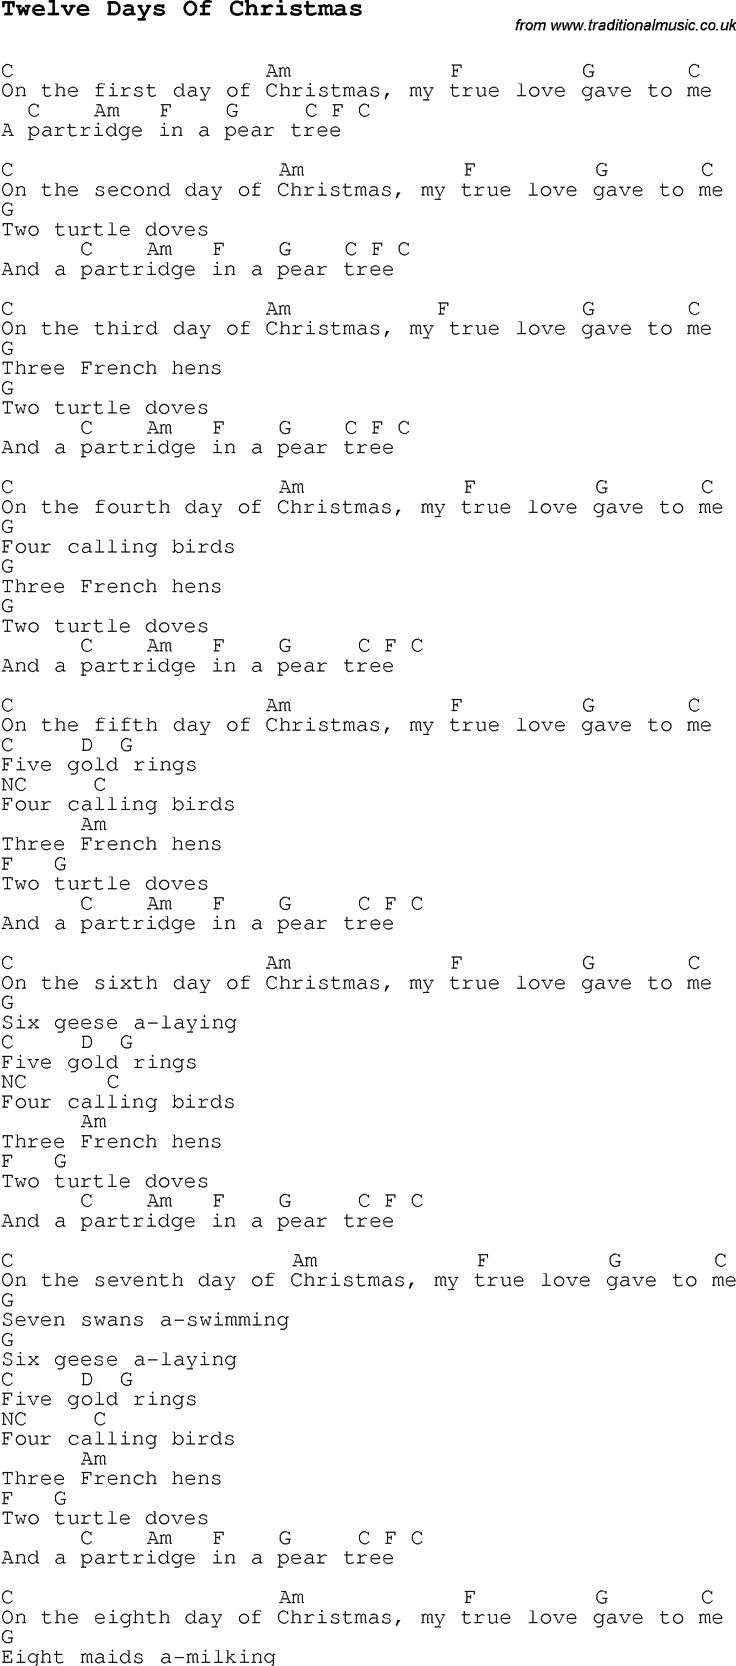 Christmas song lyrics chords new yearfo 2019 hexwebz Gallery